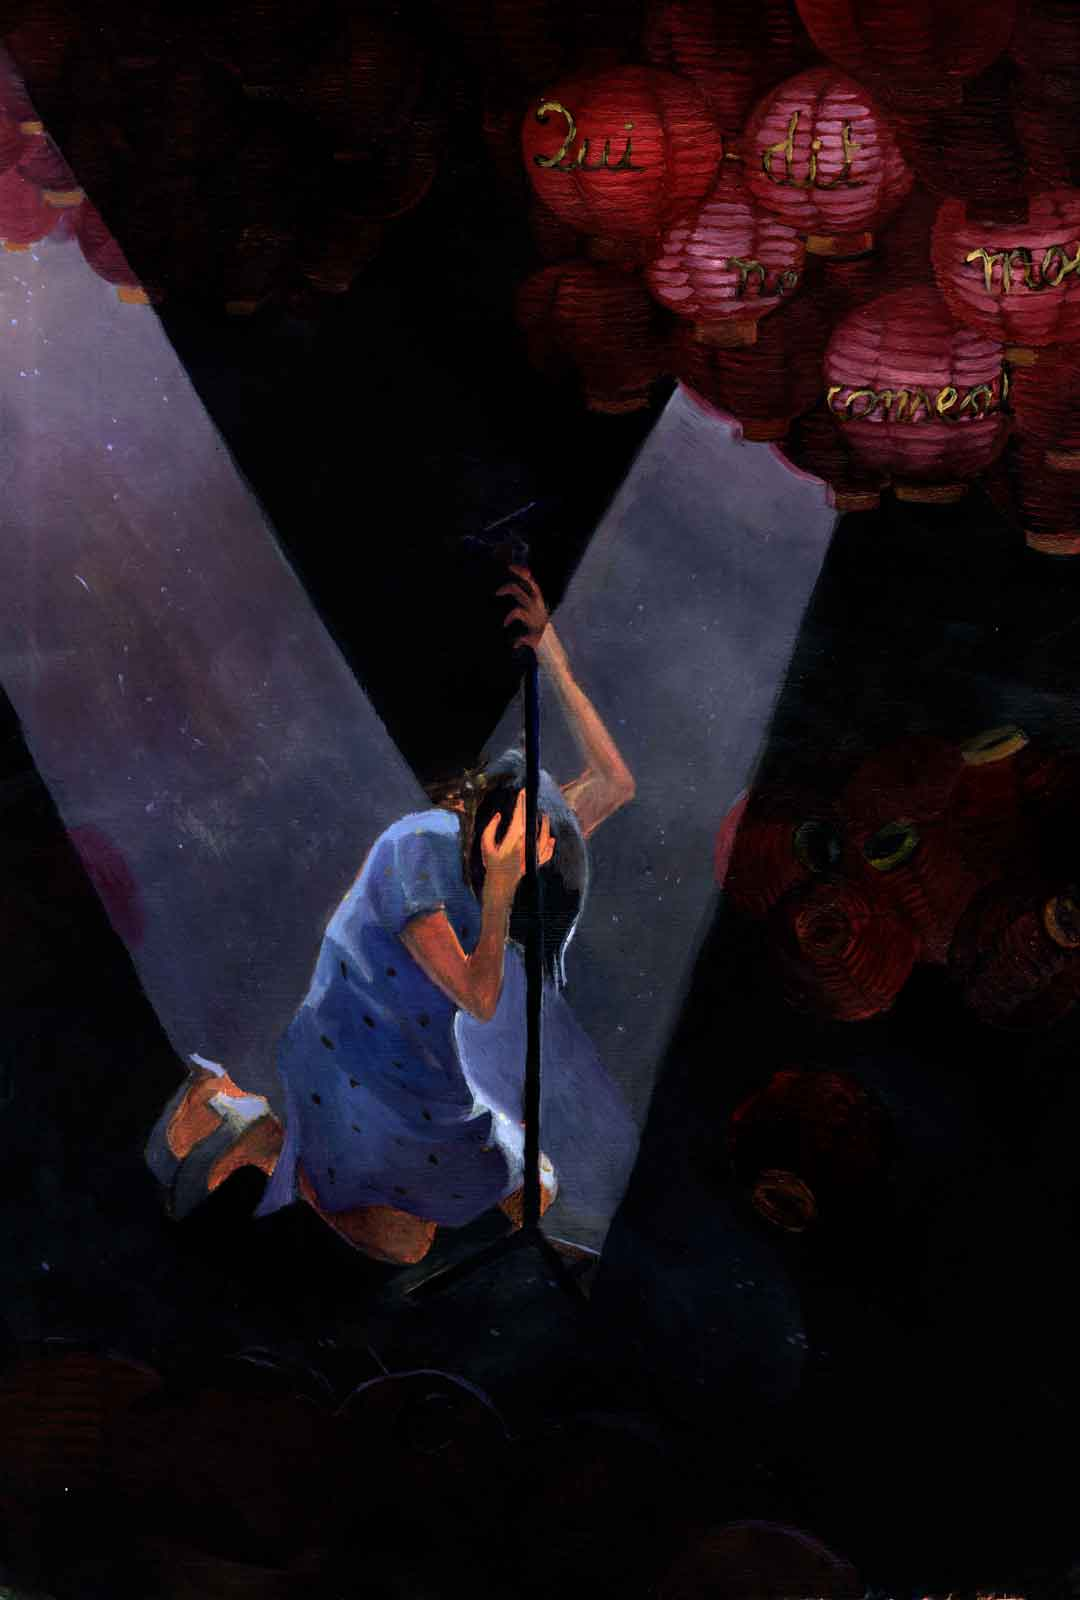 A chinese singer crouches on the stage in a completely dark theater with a few red lanterns upon which is written 'who doesn't say anything agrees'